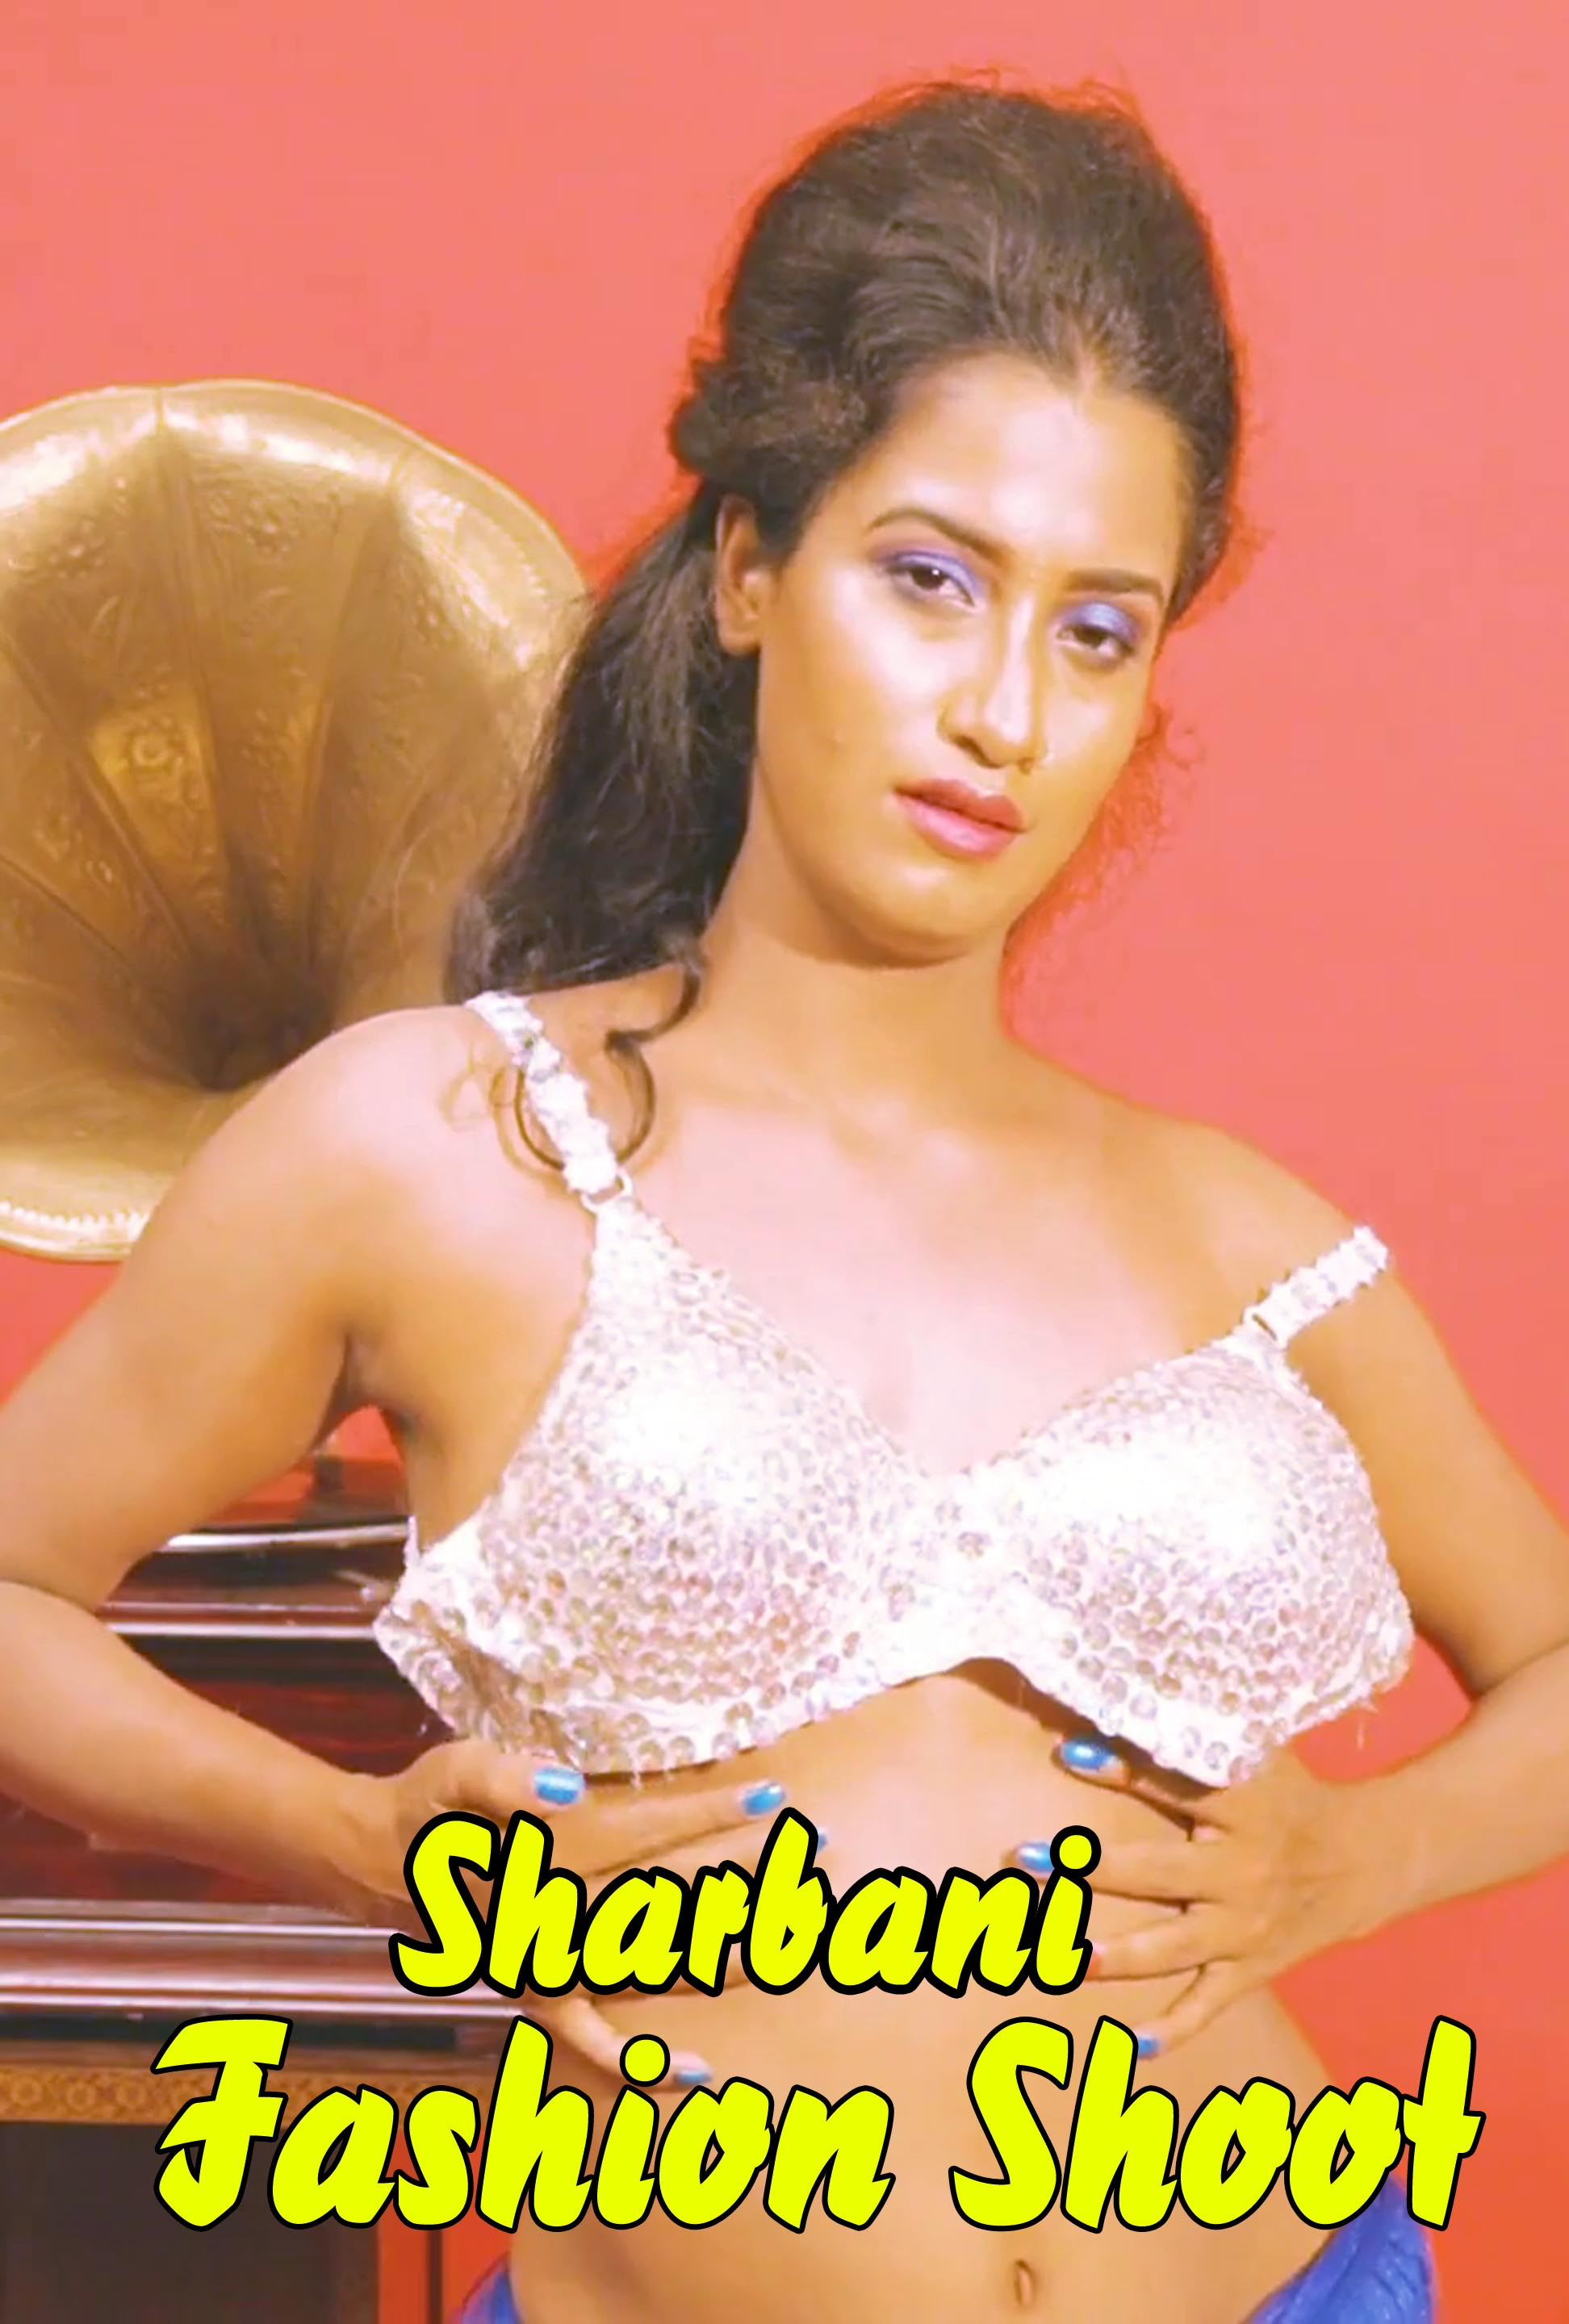 Sharbani Fashion Shoot 2020 Hindi Nuefliks Originals Video 720p HDRip 64MB Download